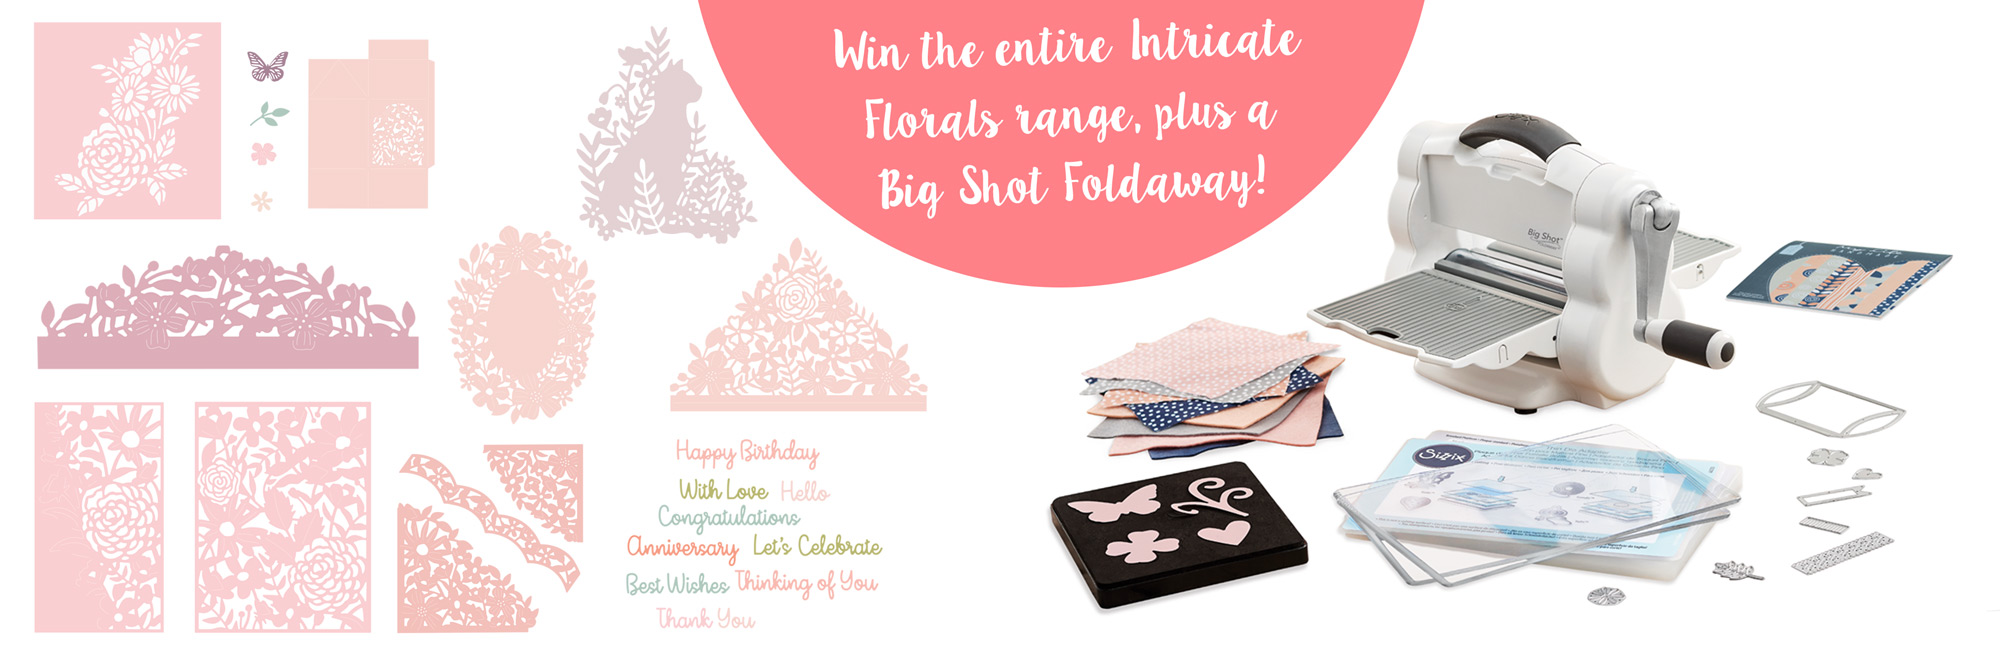 Intricate Floral Giveaway